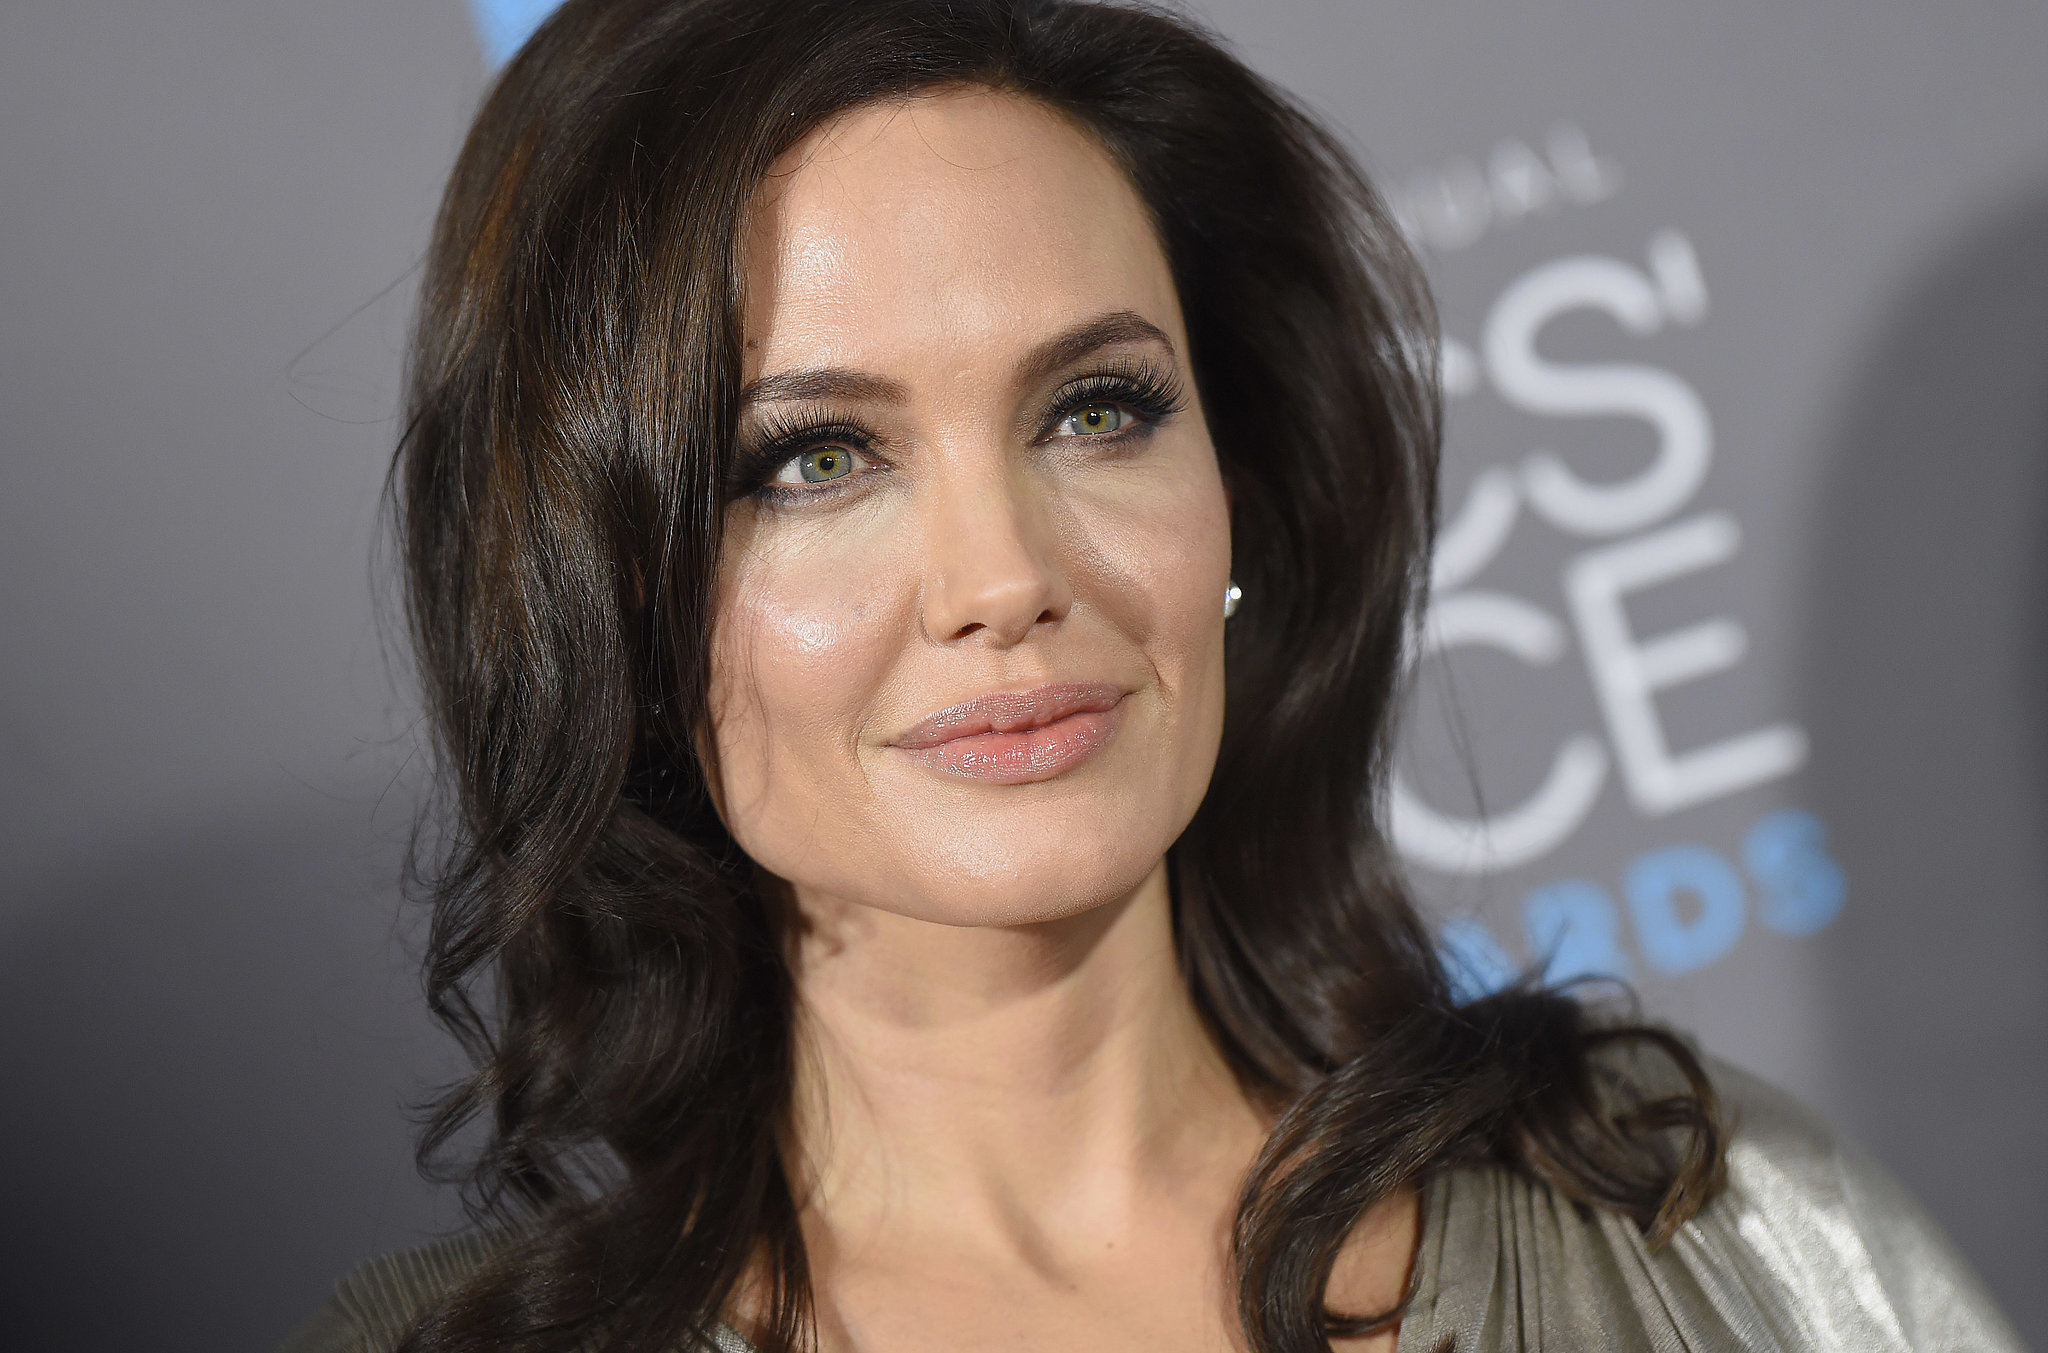 Angelina Jolie Share This Link